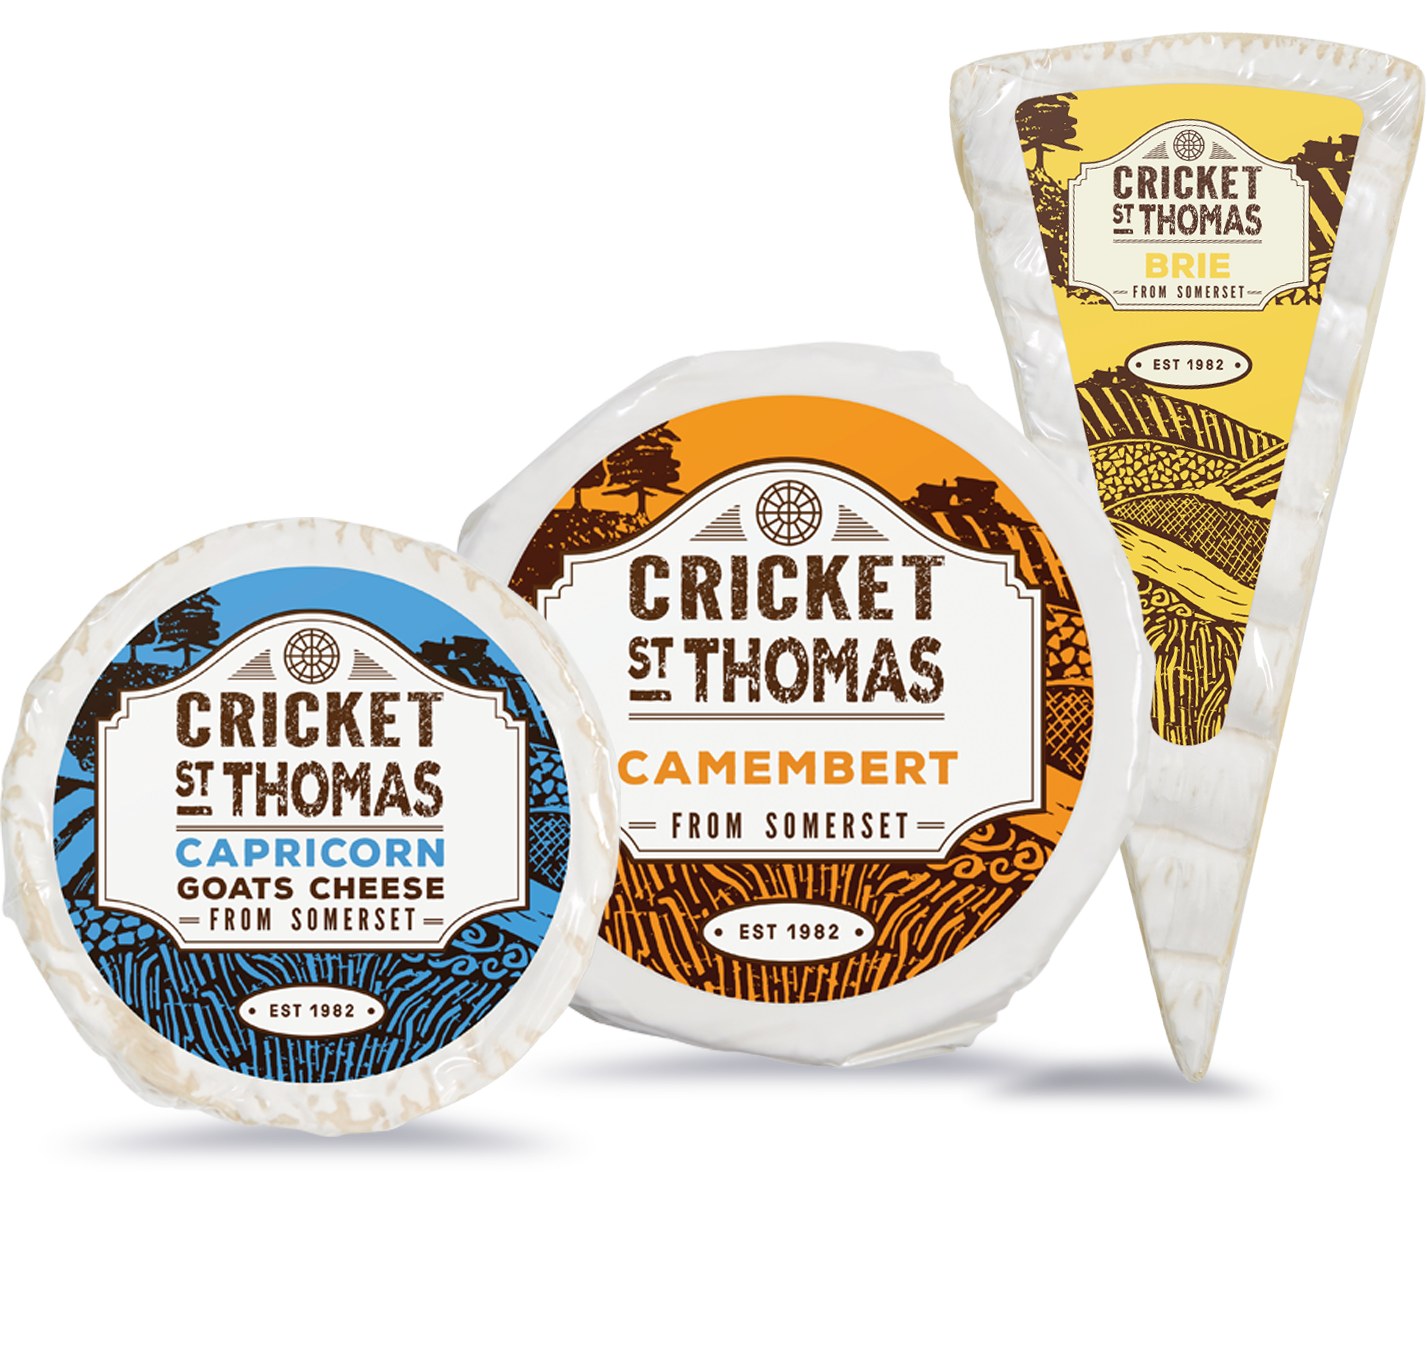 The collection of cheeses Cricket St Thomas Make